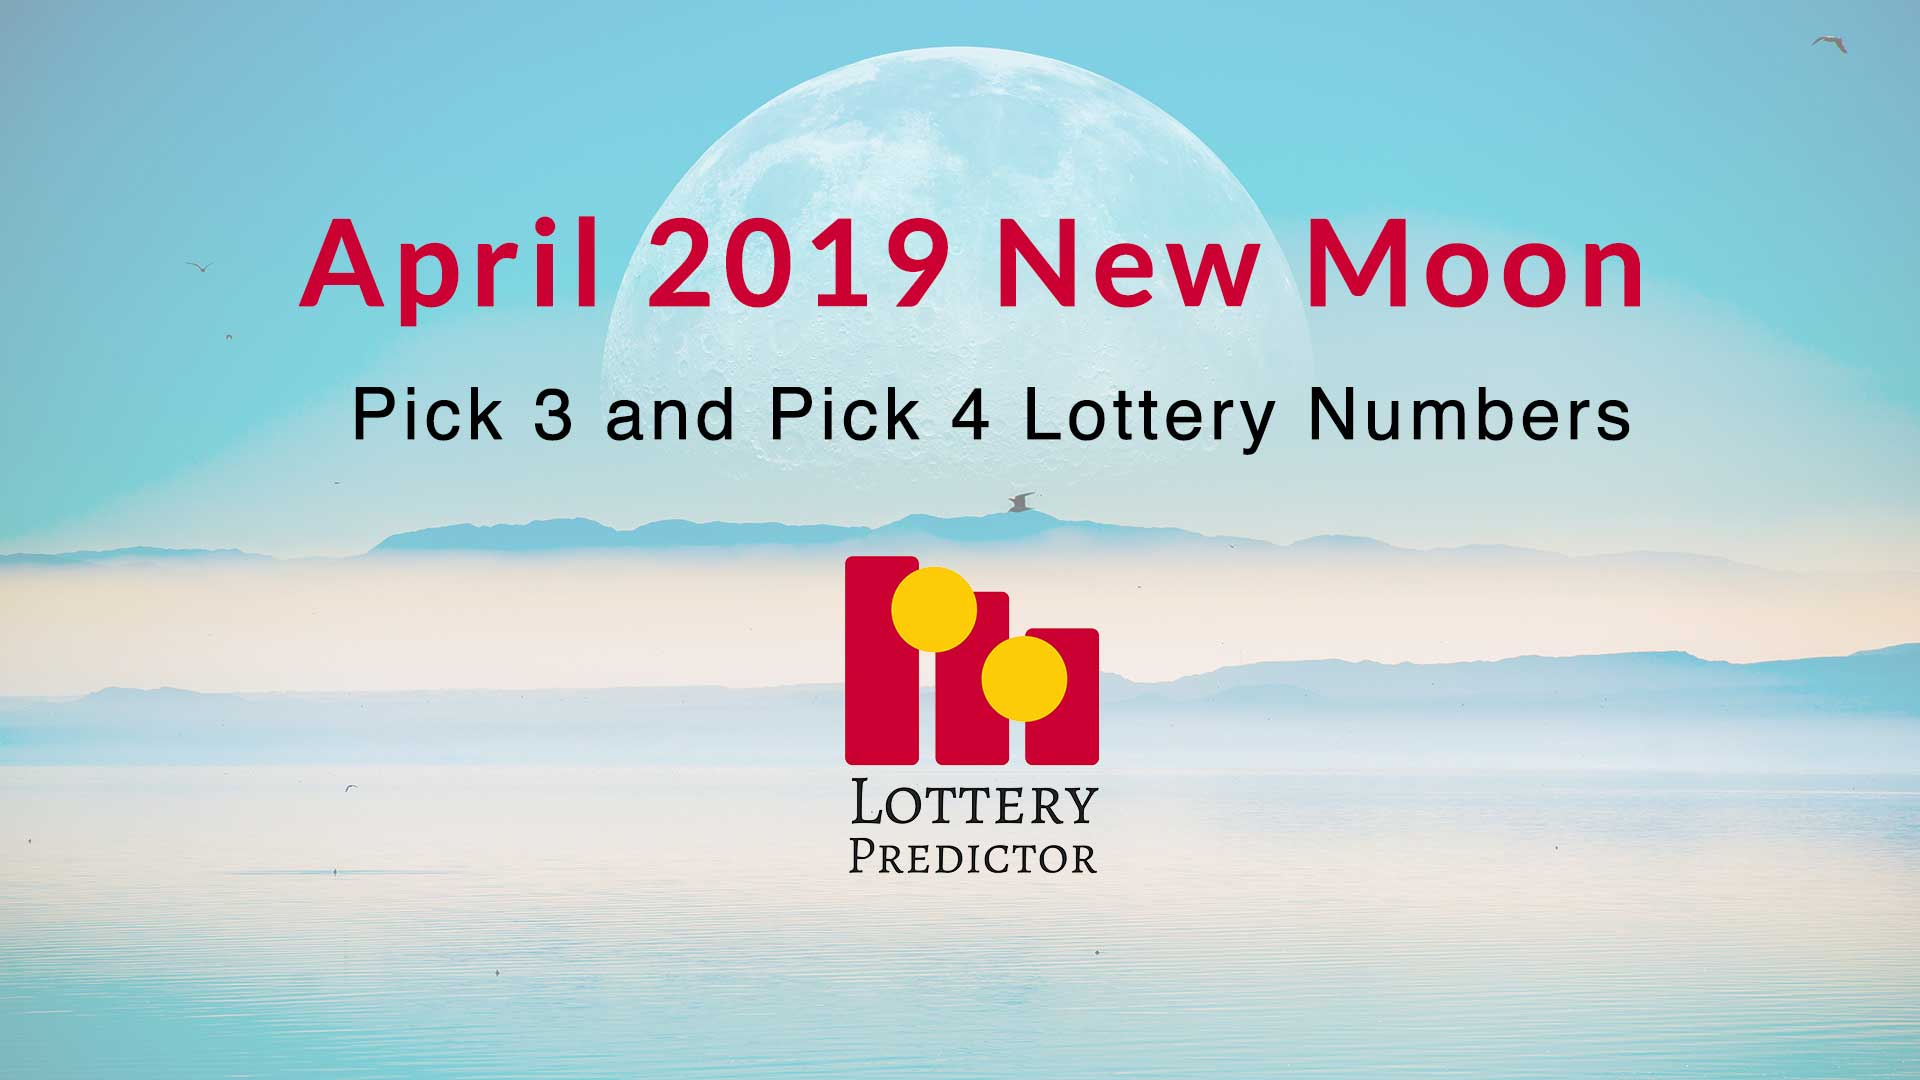 April New Moon Pick 3 And Pick 4 Lottery Number Predictions